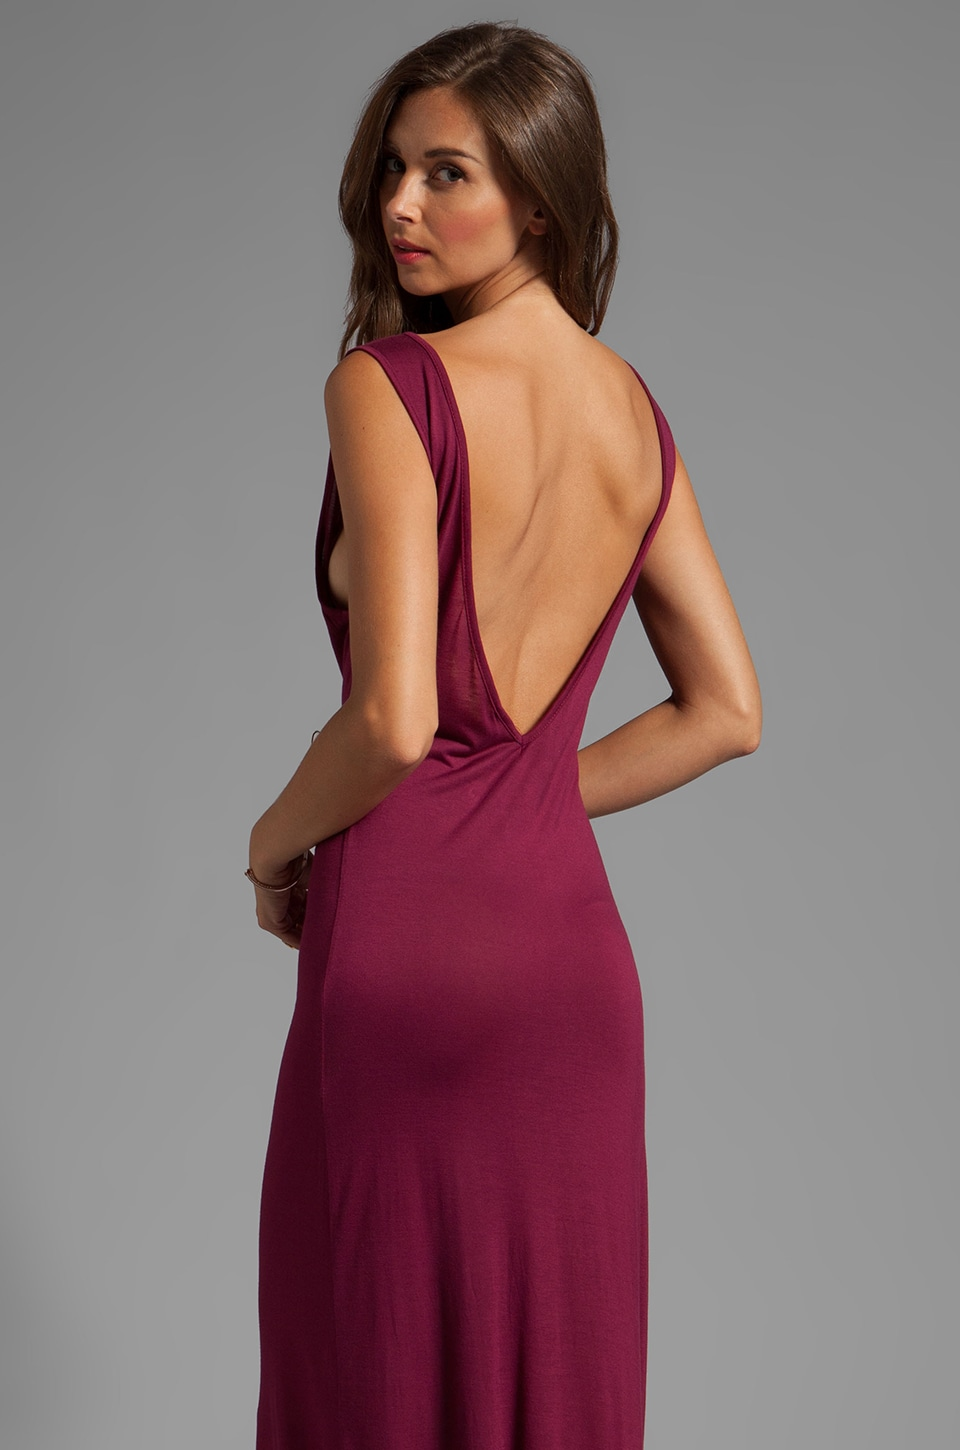 Gypsy Junkies Everyday Backless Tank Maxi Dress in Berry